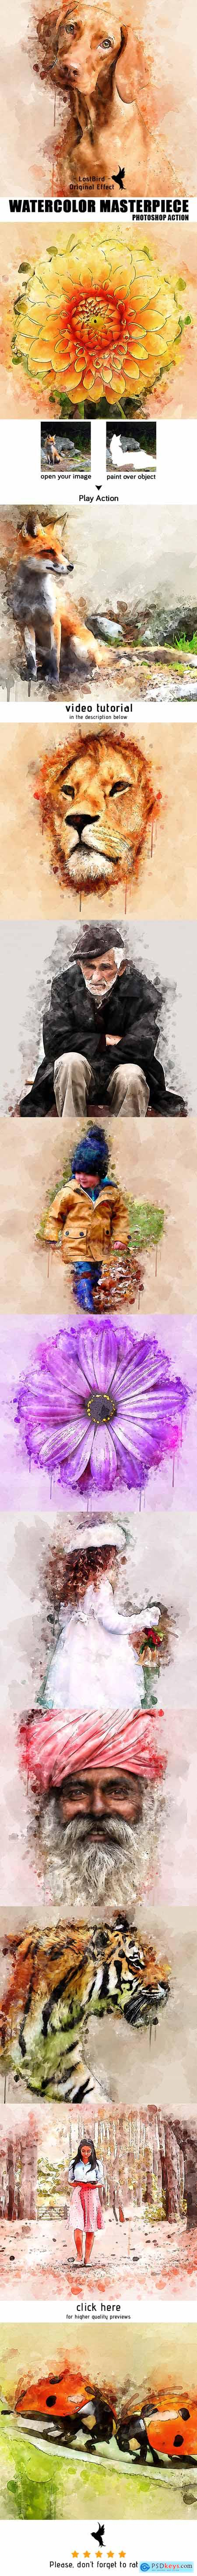 Watercolor Masterpiece - Photoshop Action 22921333